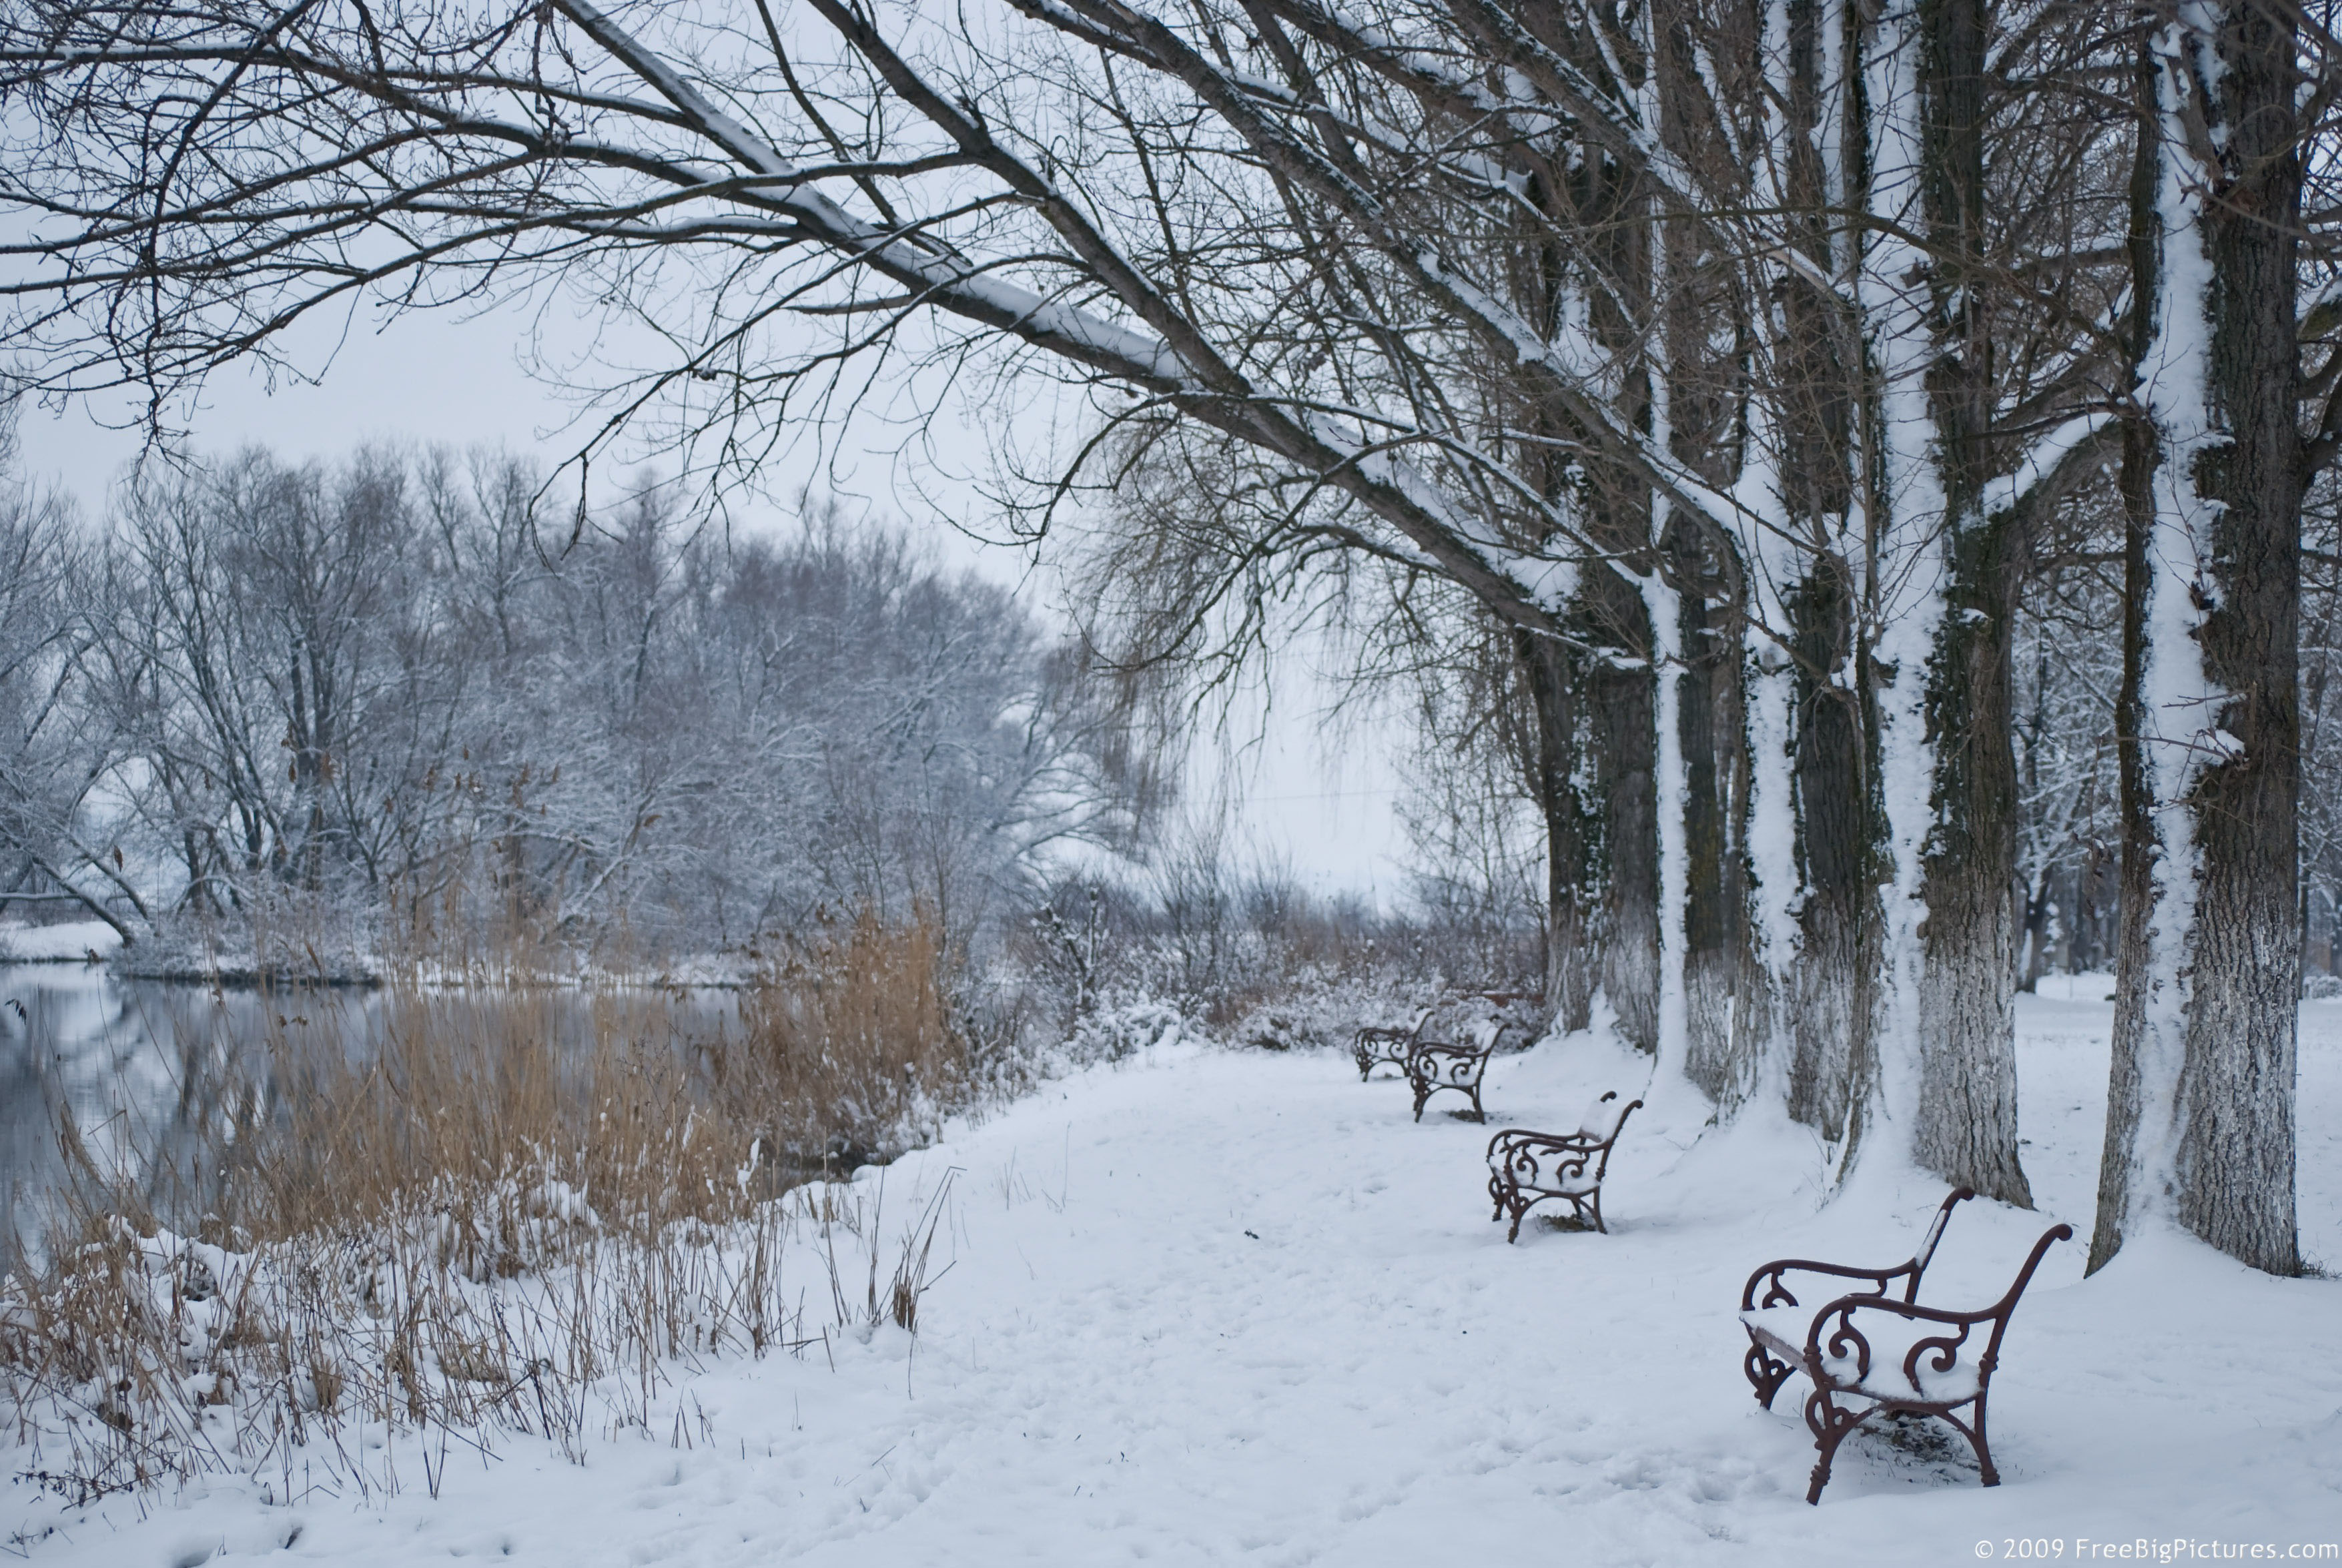 winter-High-Resolution-Winter-Pictures-Scene-is-a-charming-image-wallpaper-wp4210715